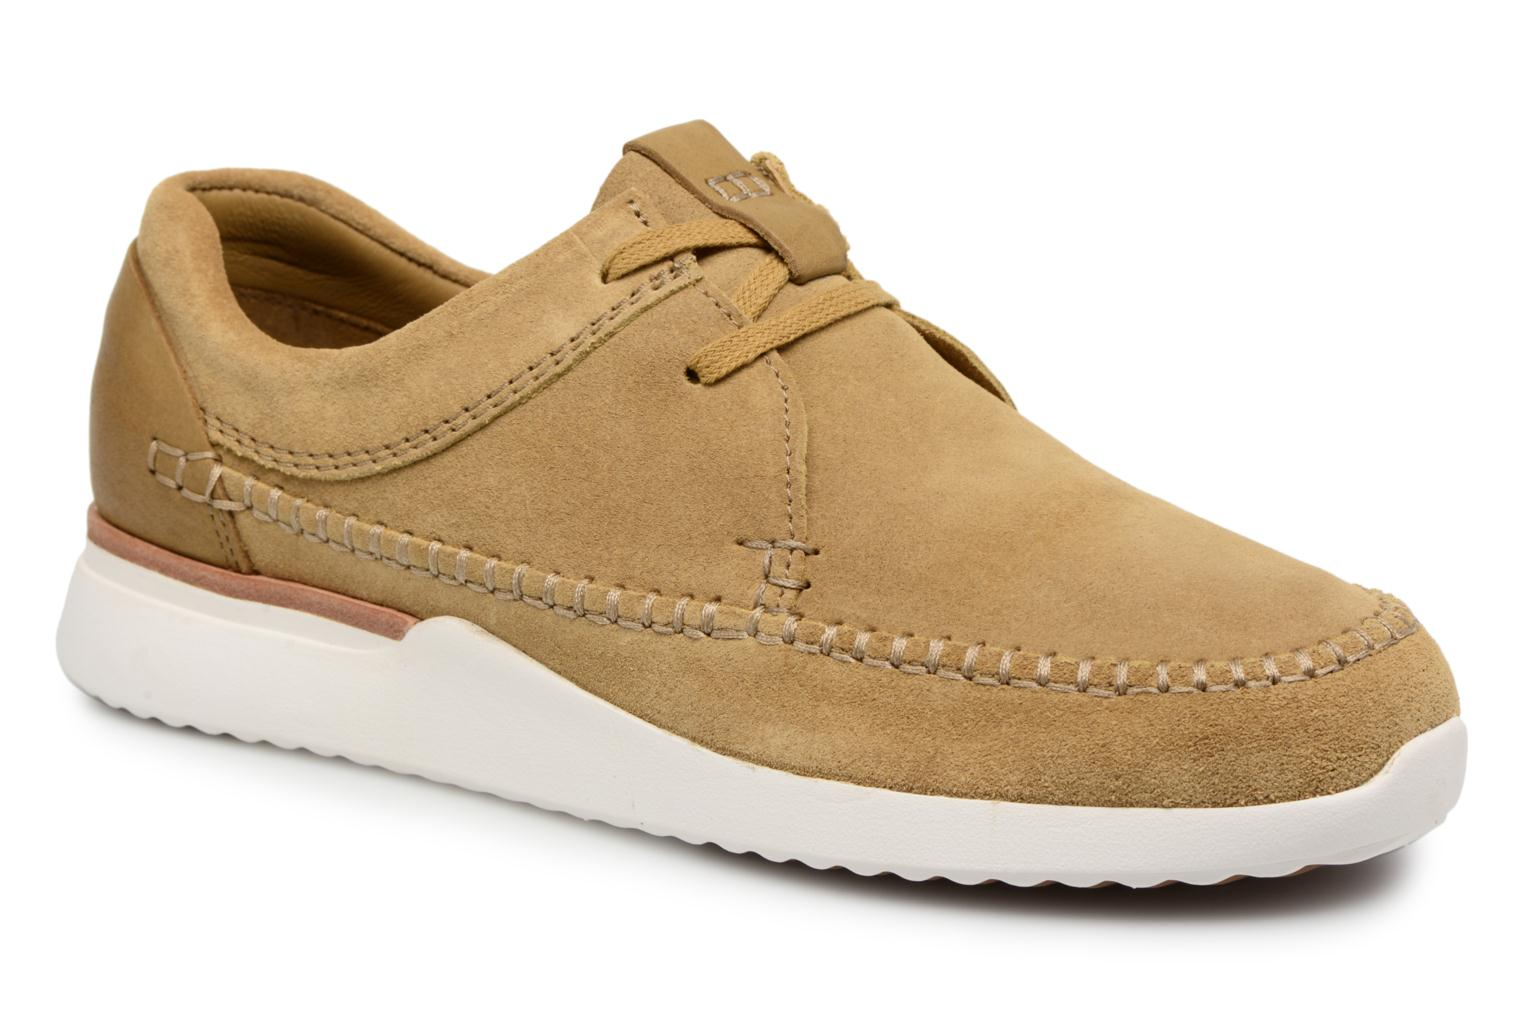 Tor Track by Clarks Originals